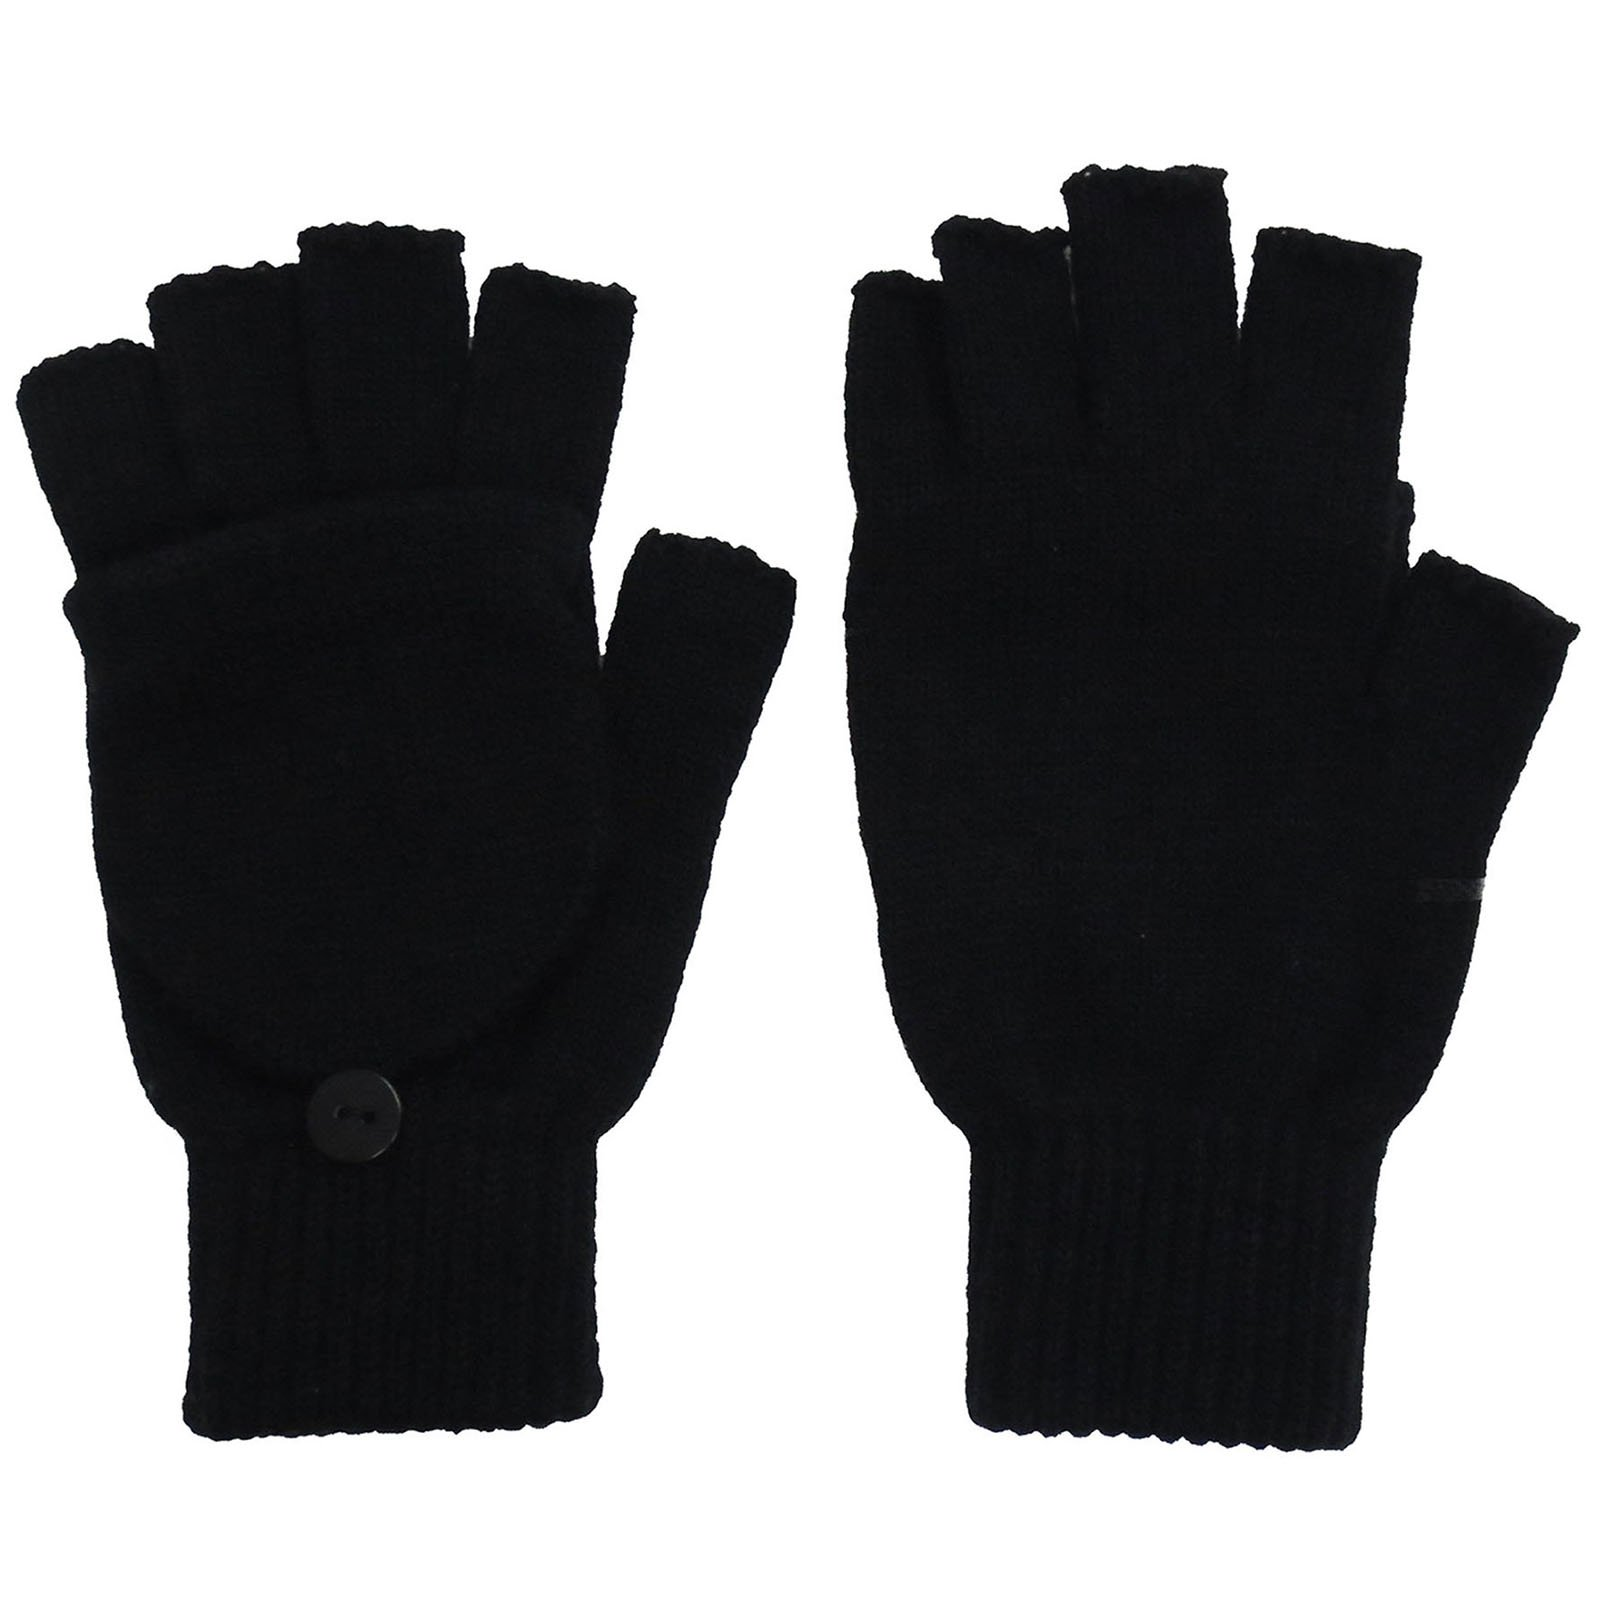 Men's Solid Basic Fingerless Knitted Gloves w/Convertible Mittens, Black